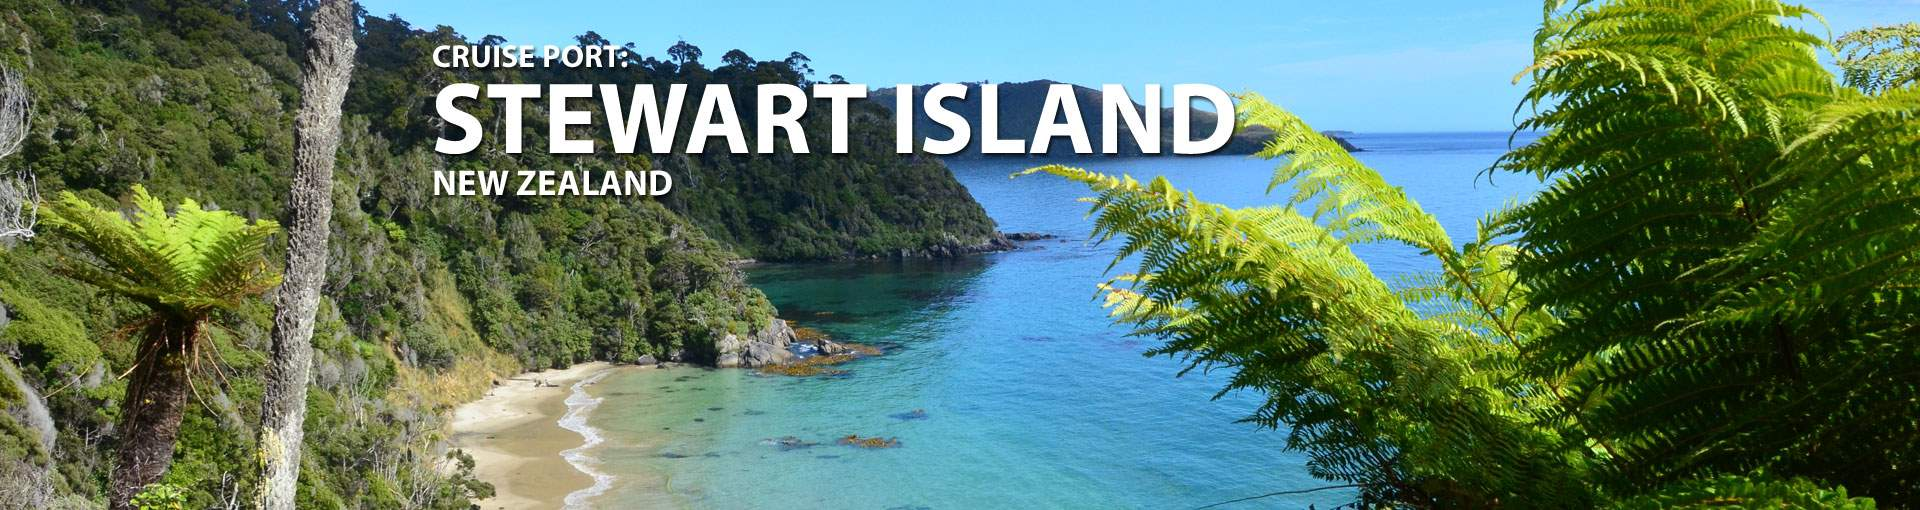 Cruises to Stewart Island, New Zealand